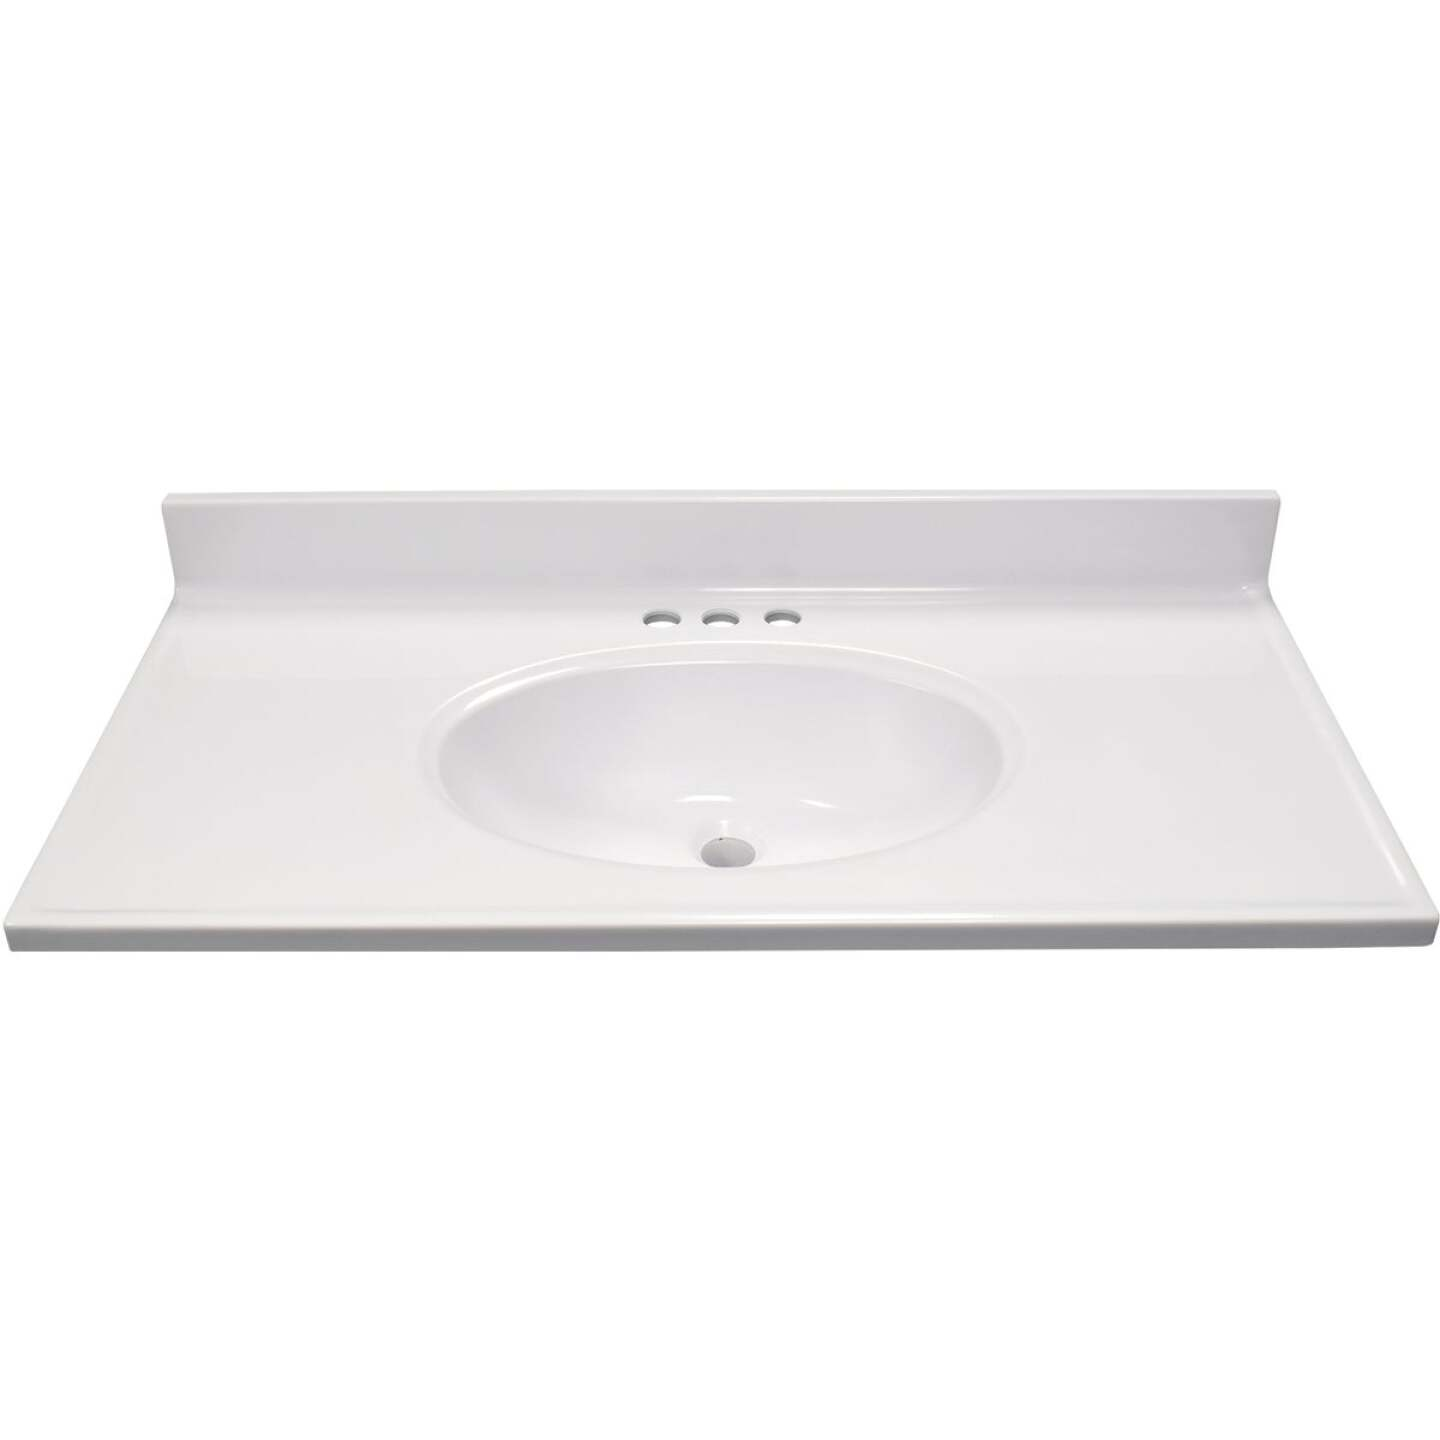 Modular Vanity Tops 37 In. W x 19 In. D Solid White Cultured Marble Vanity Top with Oval Bowl Image 2